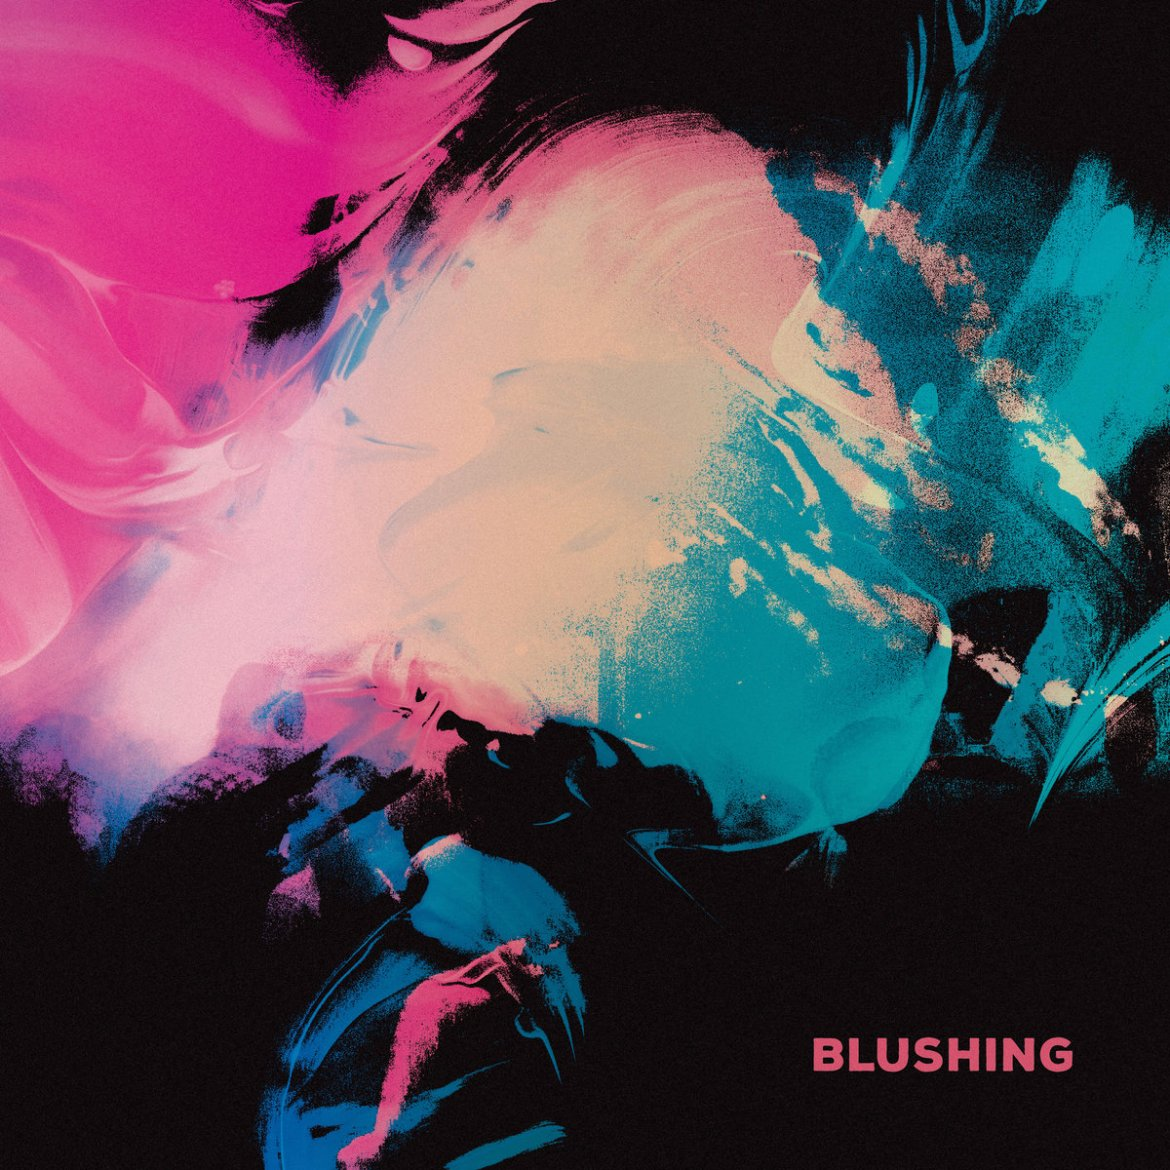 The album cover consists of blue, pink, and pale peach abstract art. Appears to look like paint strokes.